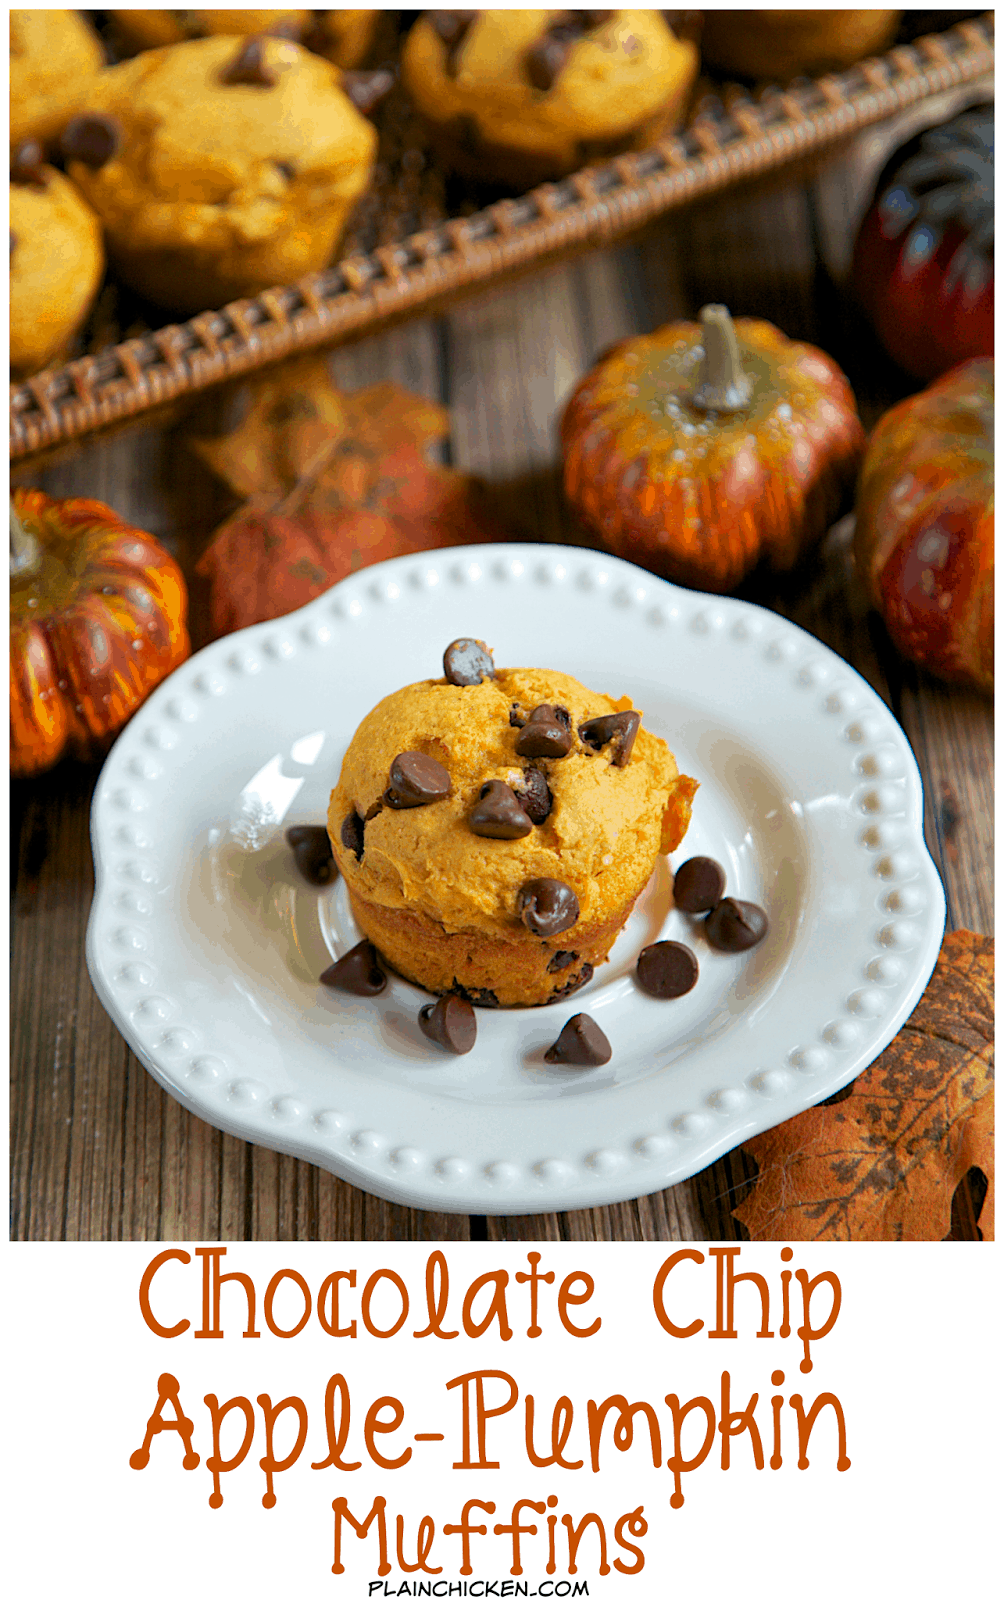 Chocolate Chip Apple-Pumpkin Muffins - SO easy! Only 4 ingredients to these quick and delicious muffins. I like to whip up a batch and eat them for breakfast or as an afternoon snack. YUM!